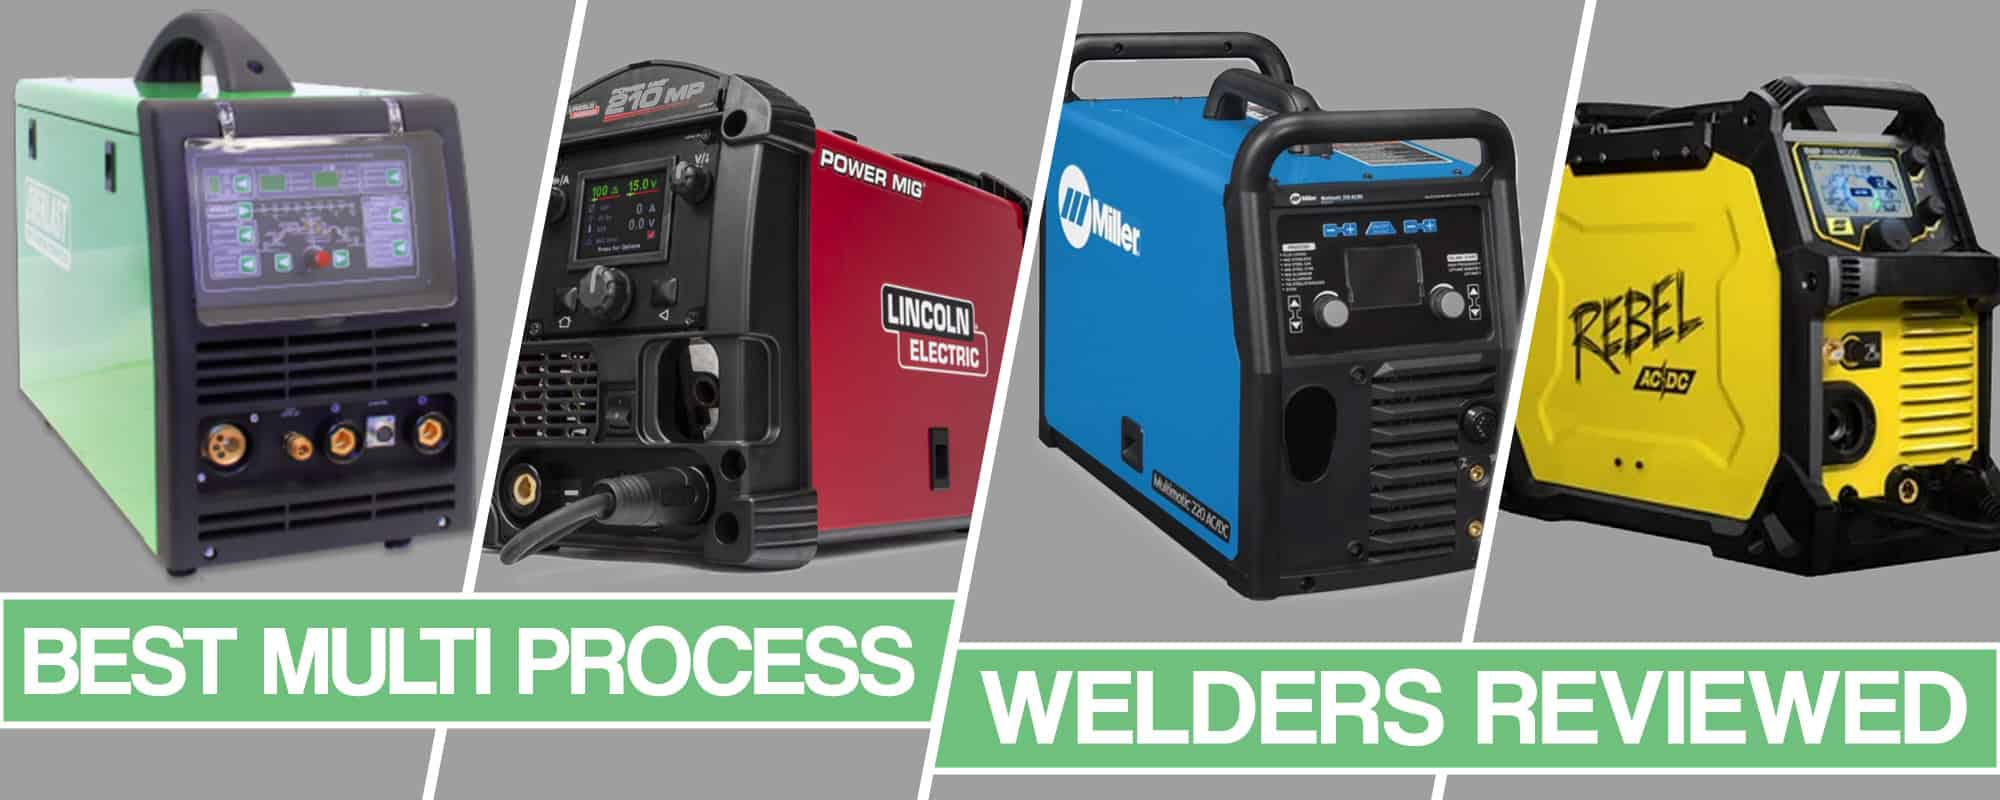 Best Multi Process Welder Reviews And Buyers Guide For 2020